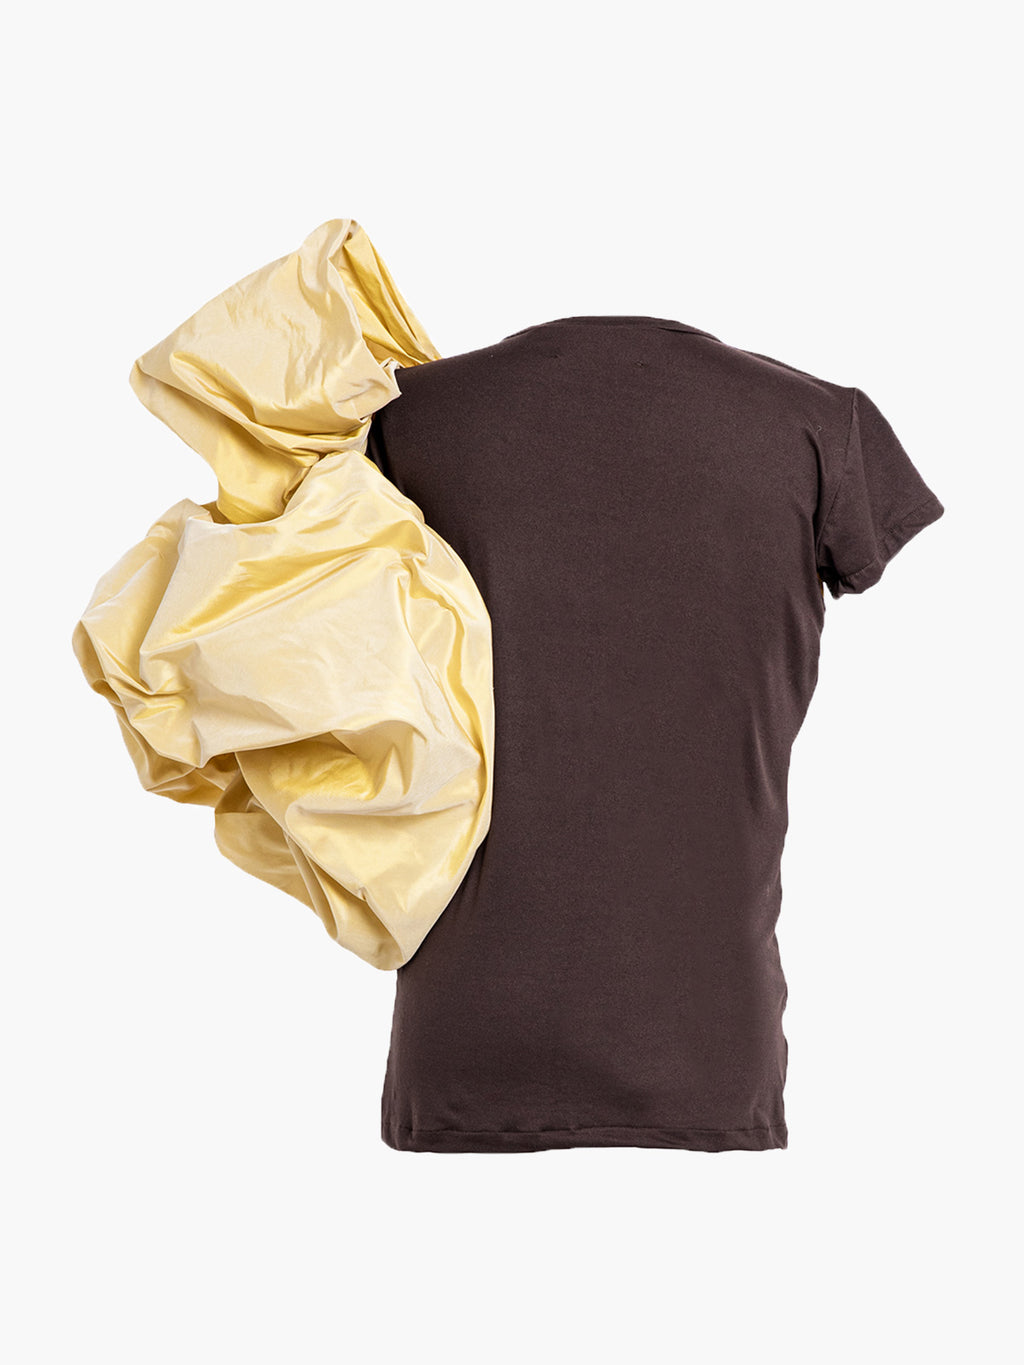 Abolengo T-Shirt | Brown With Yellow